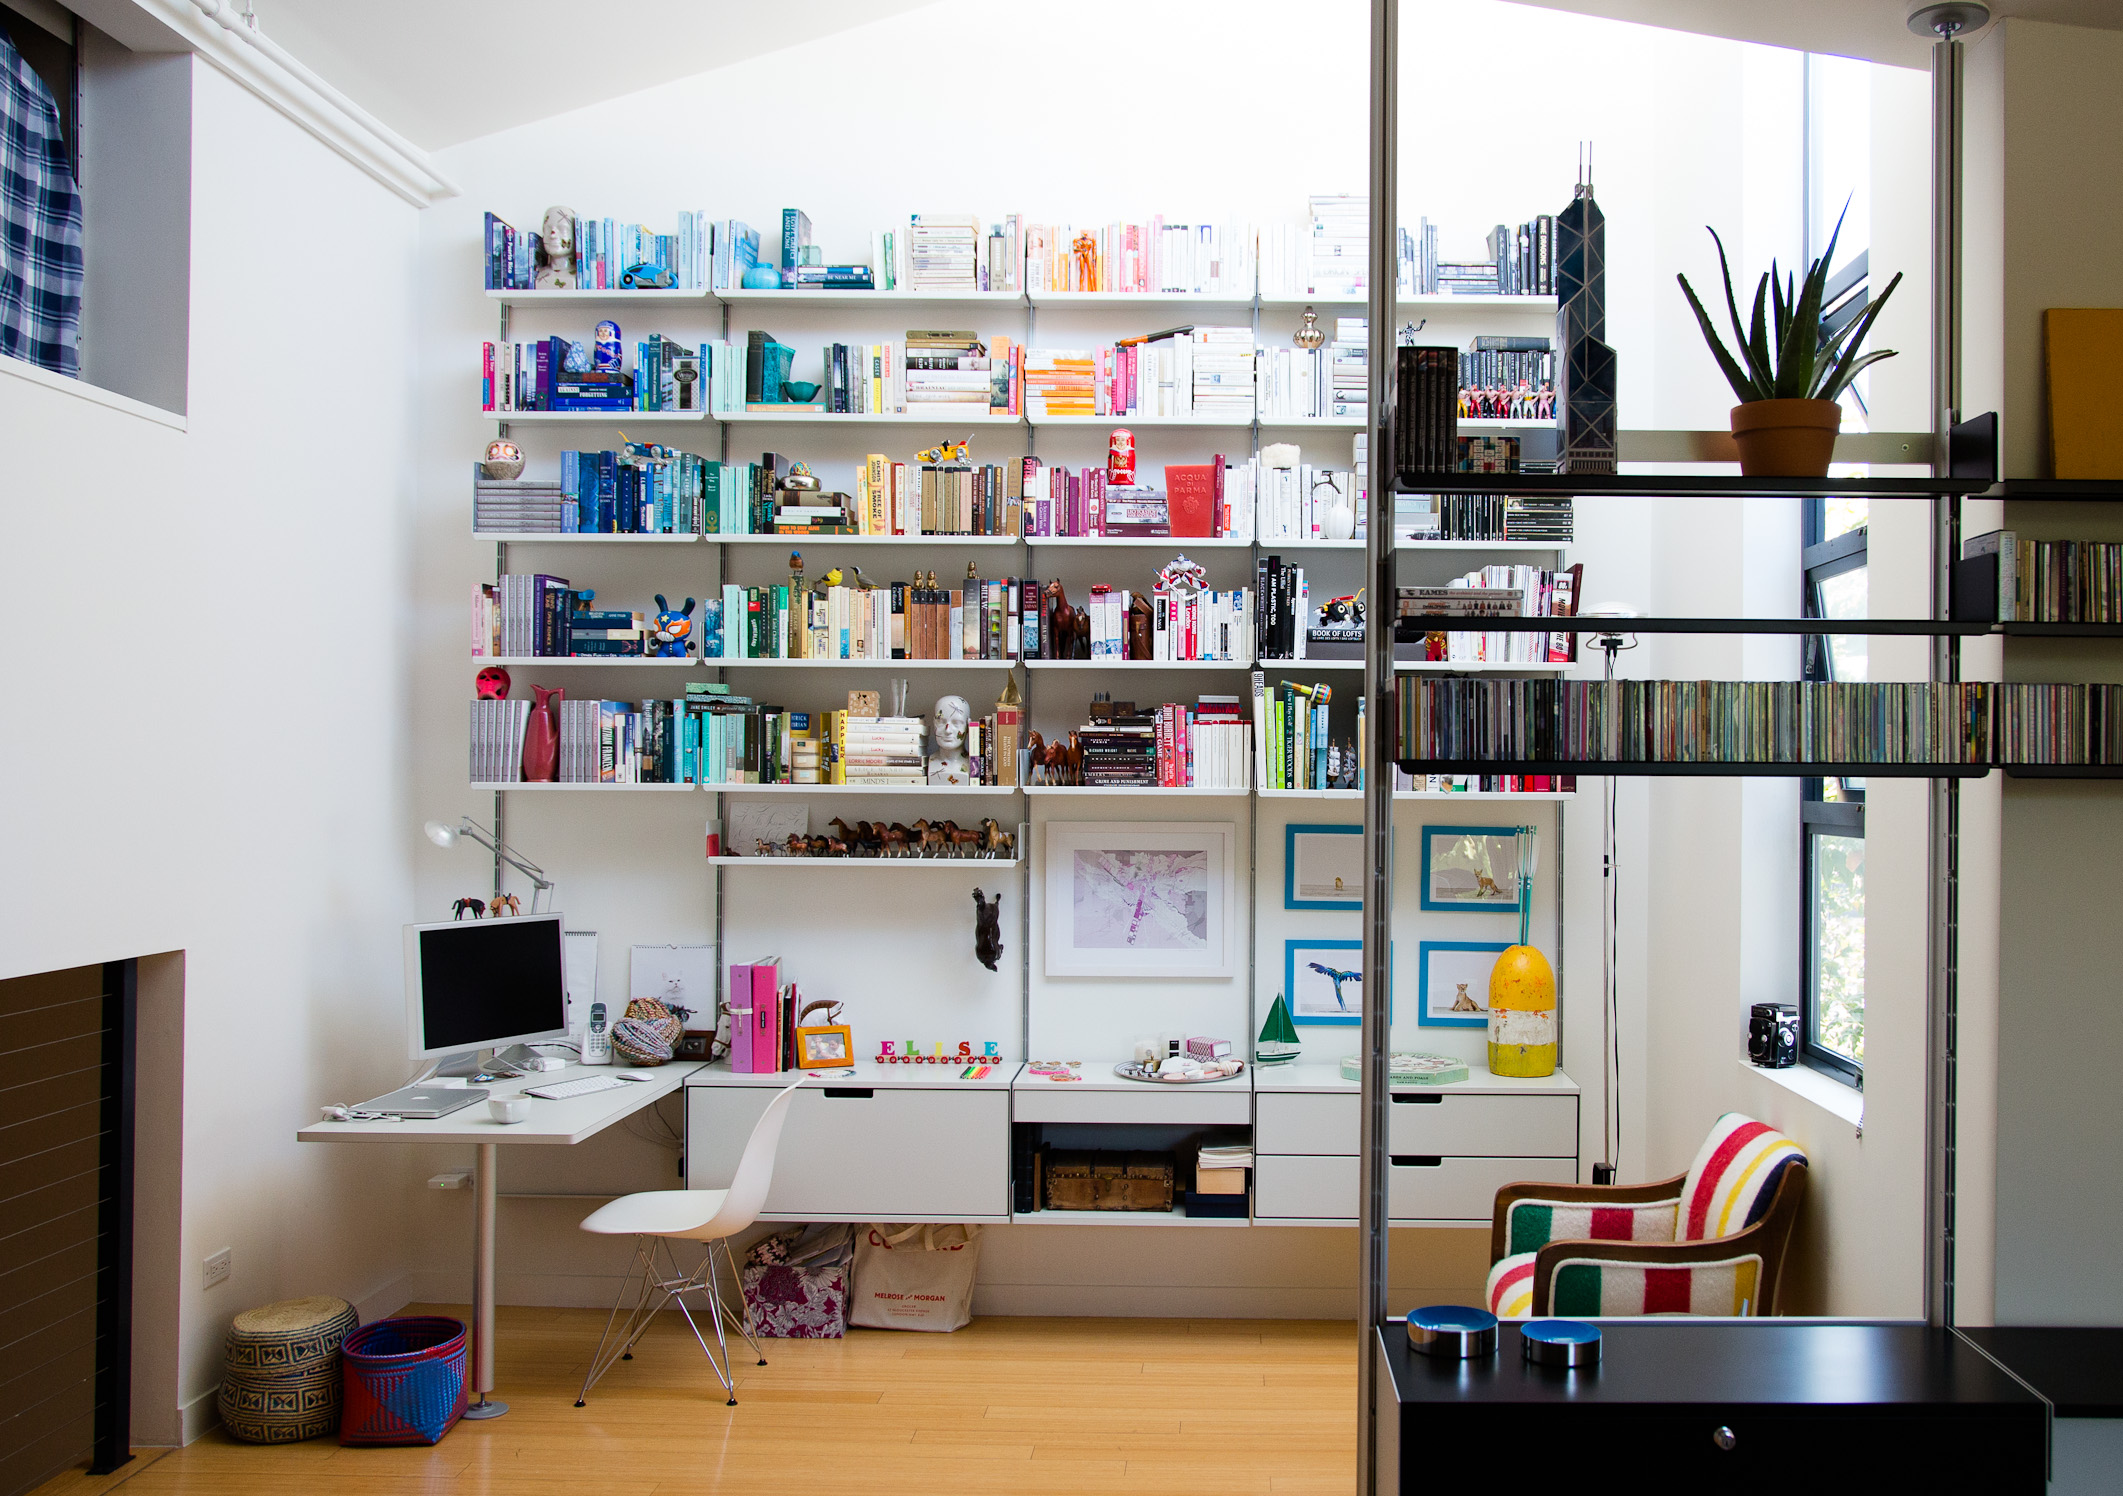 Culture Editor Anna Sinofzik On How Shelves Reveal Our